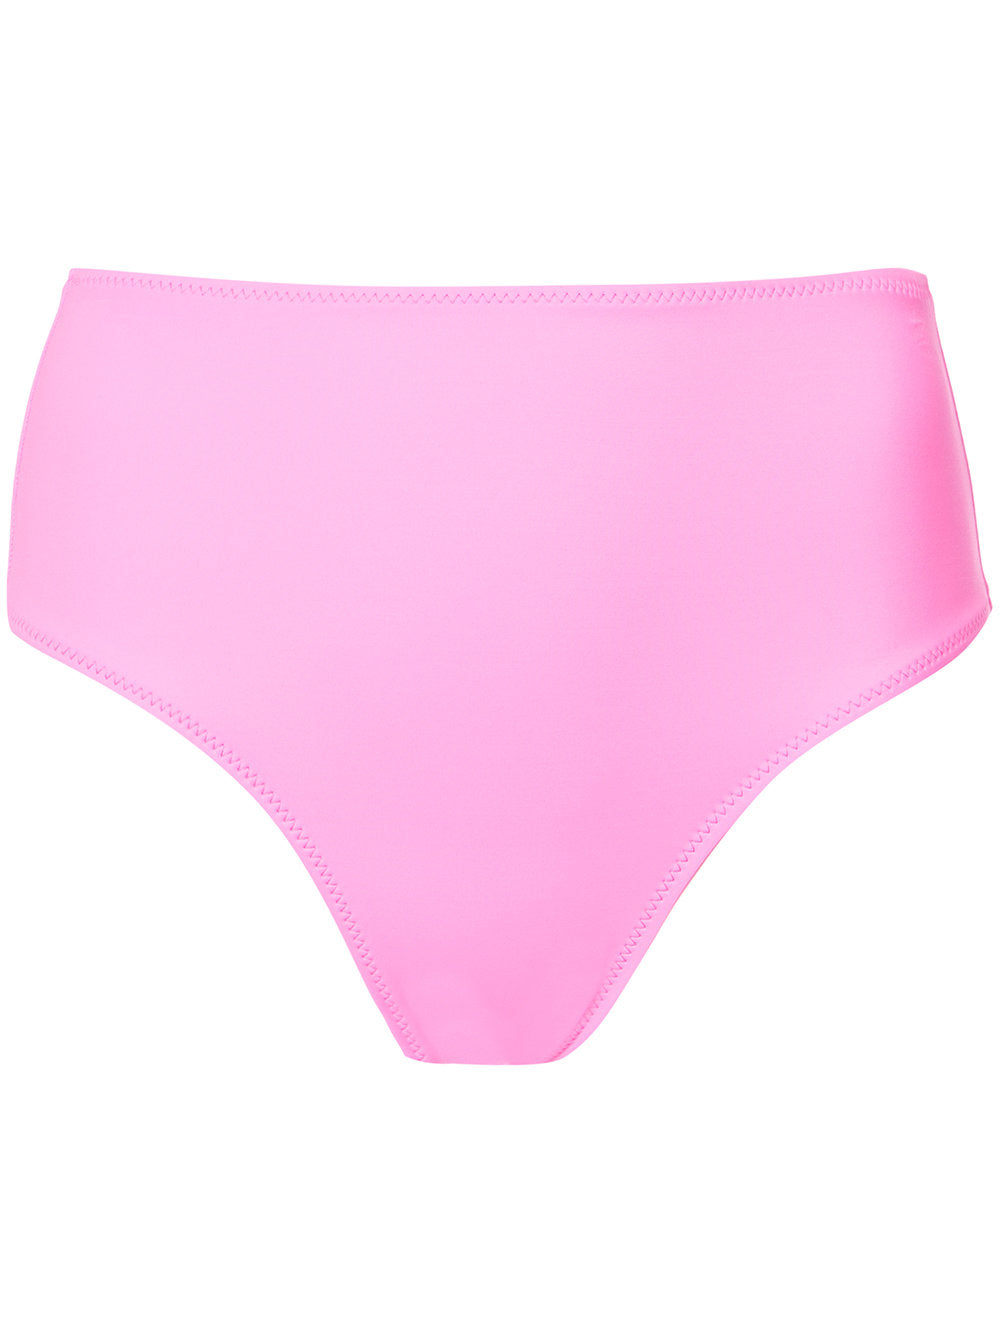 Solid & Striped Beverly Bottoms - Malibu Pink